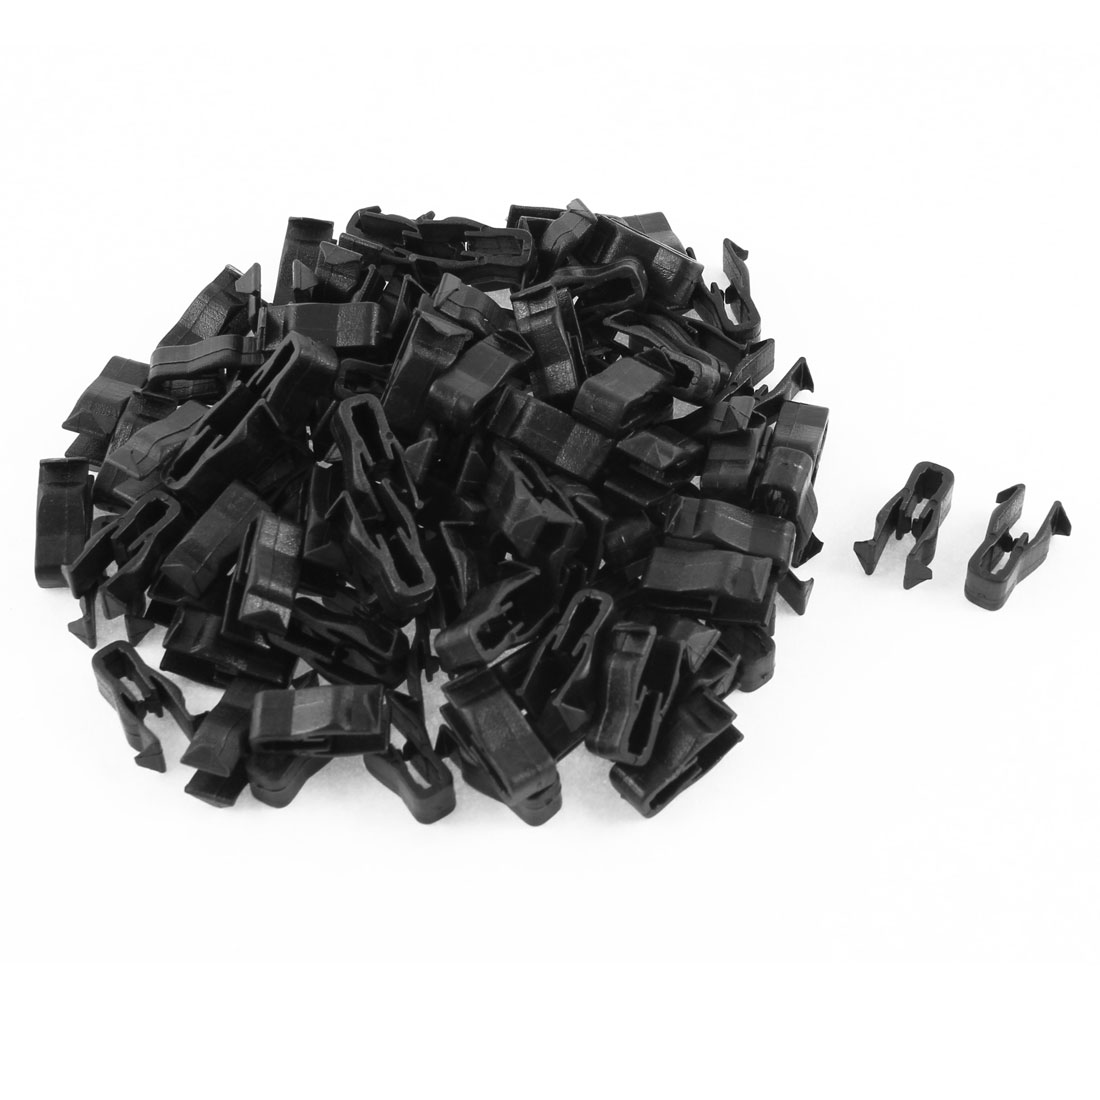 100 Pcs Black Plastic Rivet Trim Fastener Retainer Clips for 5mm Hole